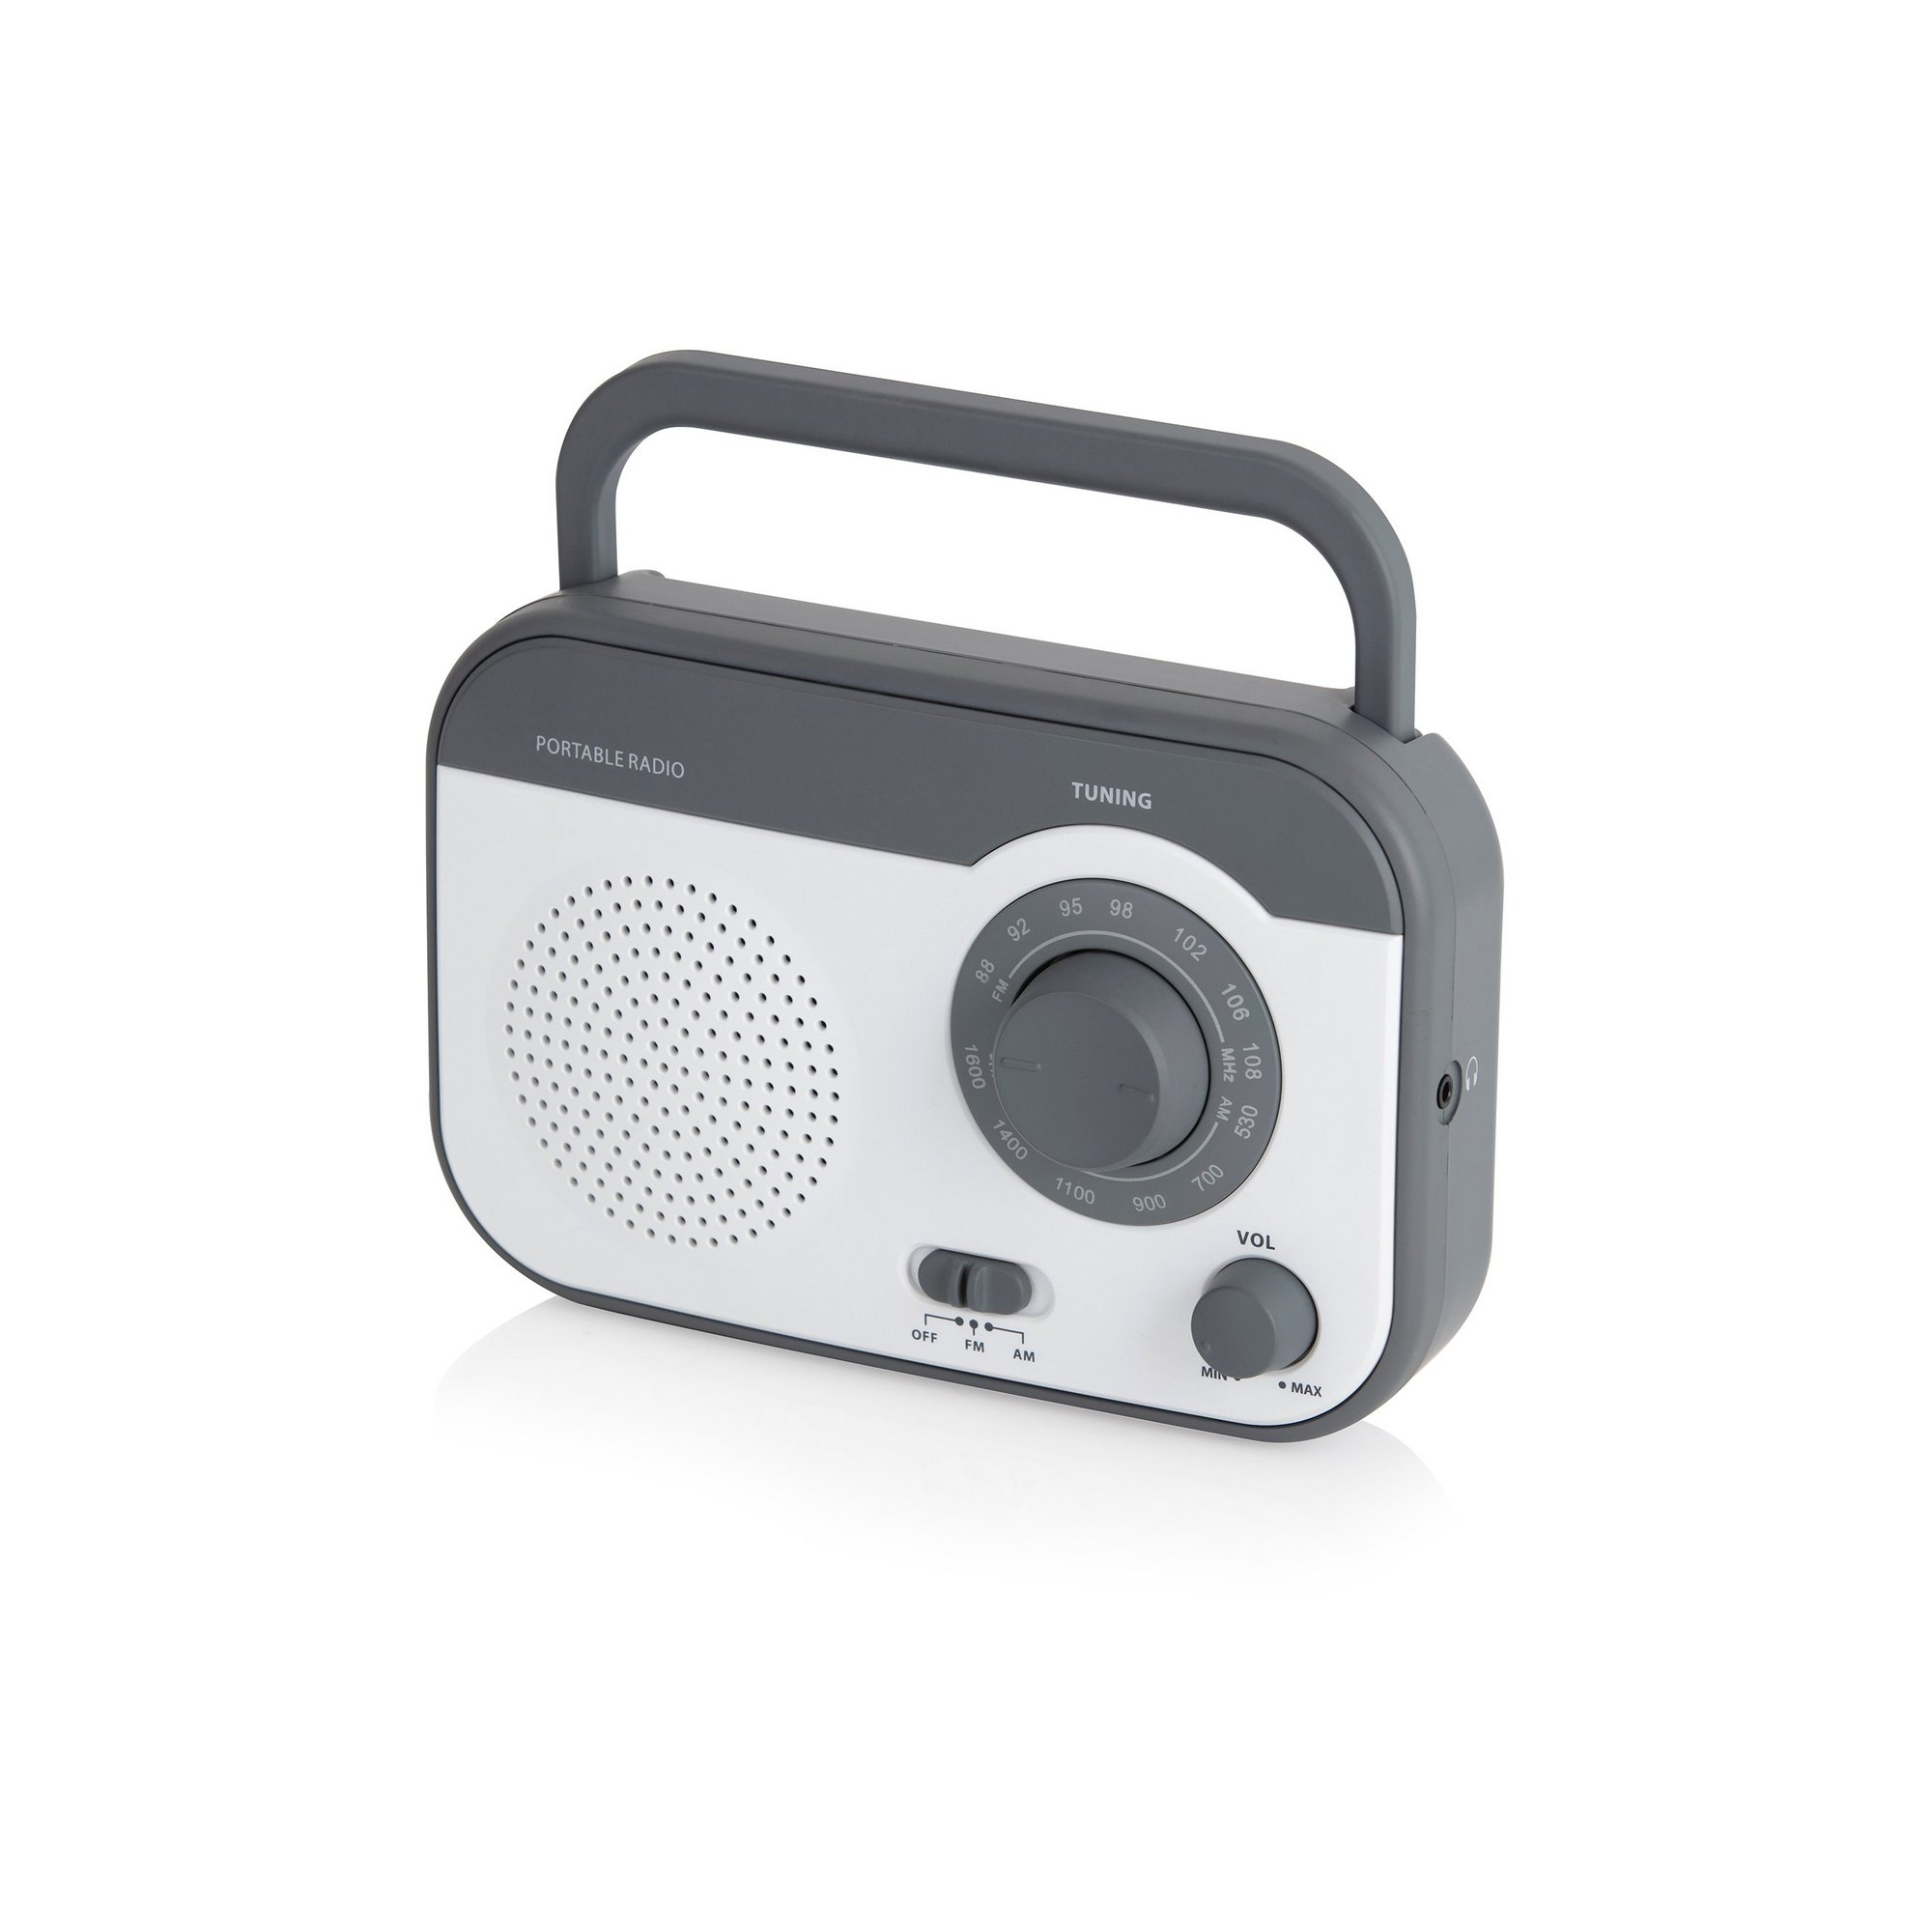 Image of Akai AM/FM Portable Radio